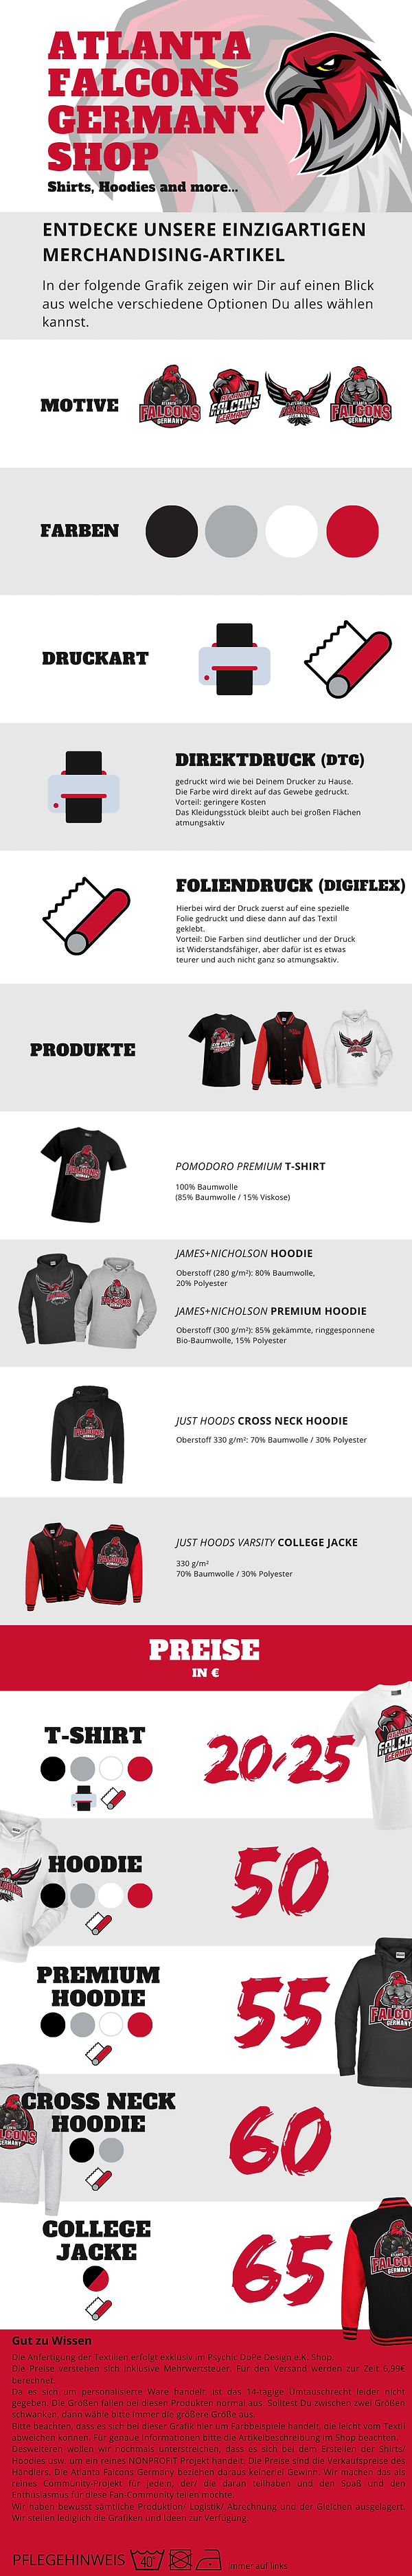 Shirts, Hoodies and more..-3-2.png